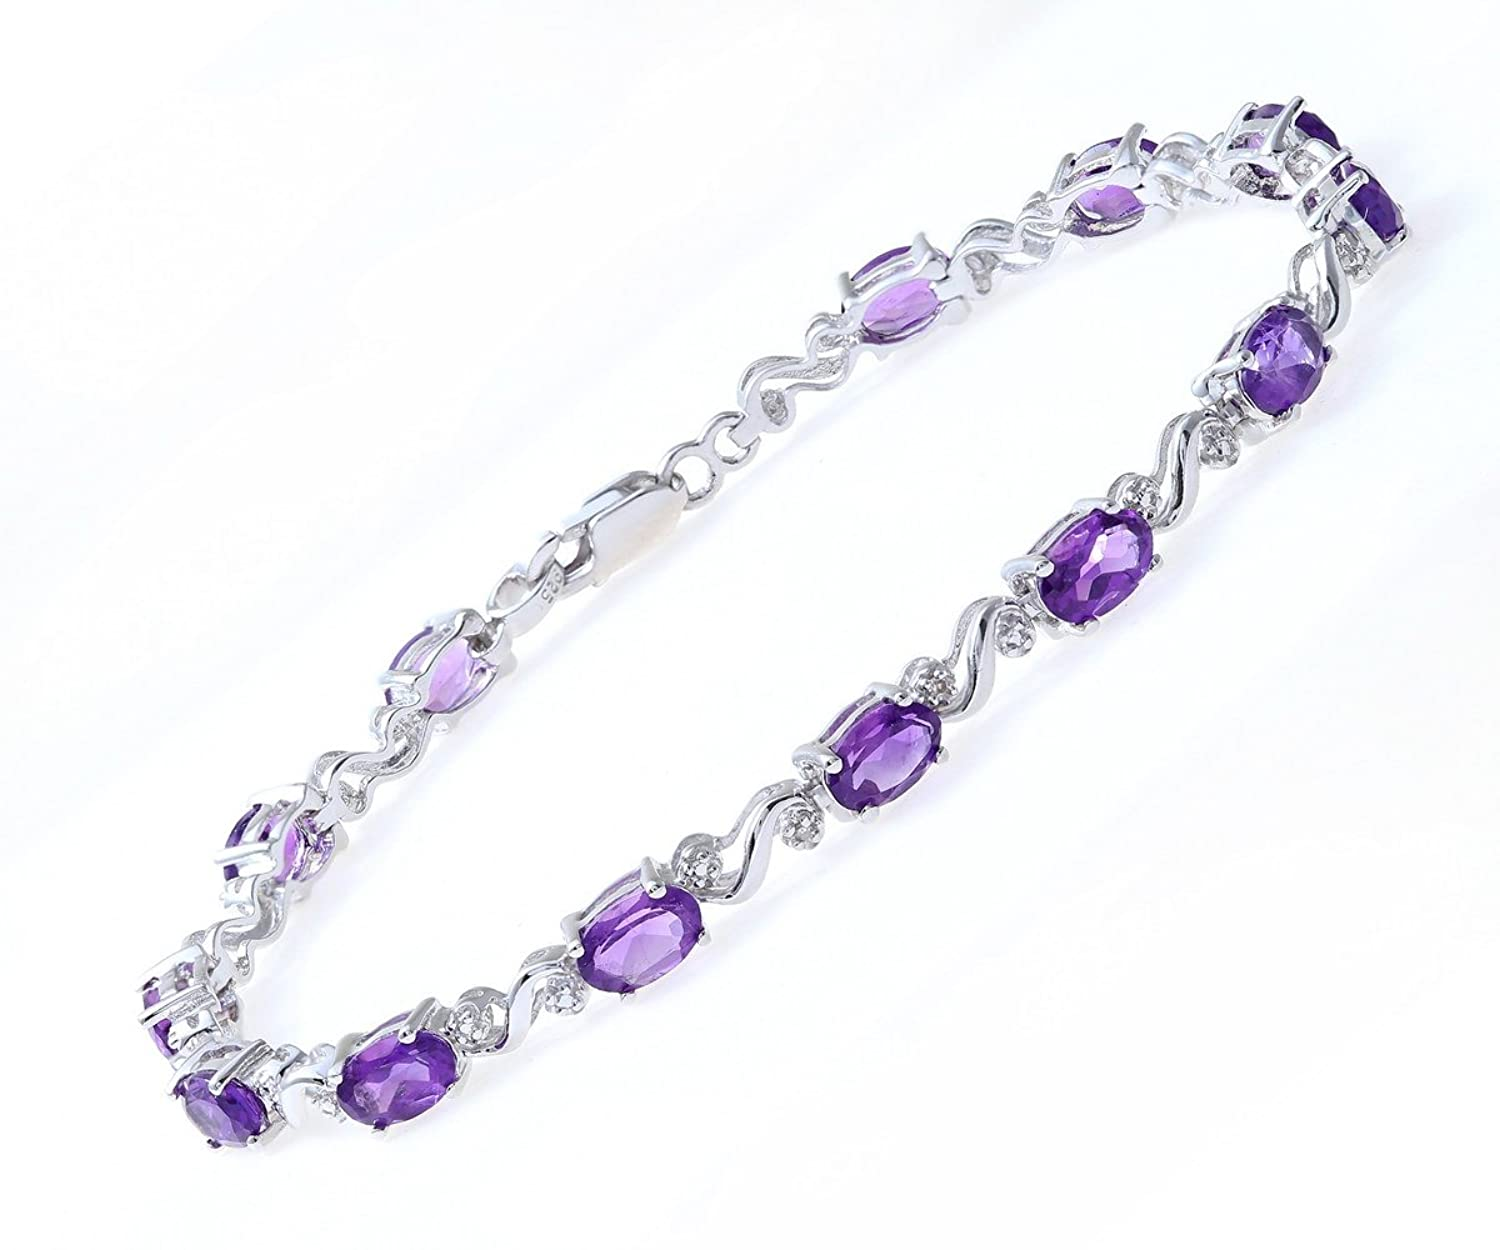 pink jewellers bracelet product fiorelli silver pinkpurple forum purple